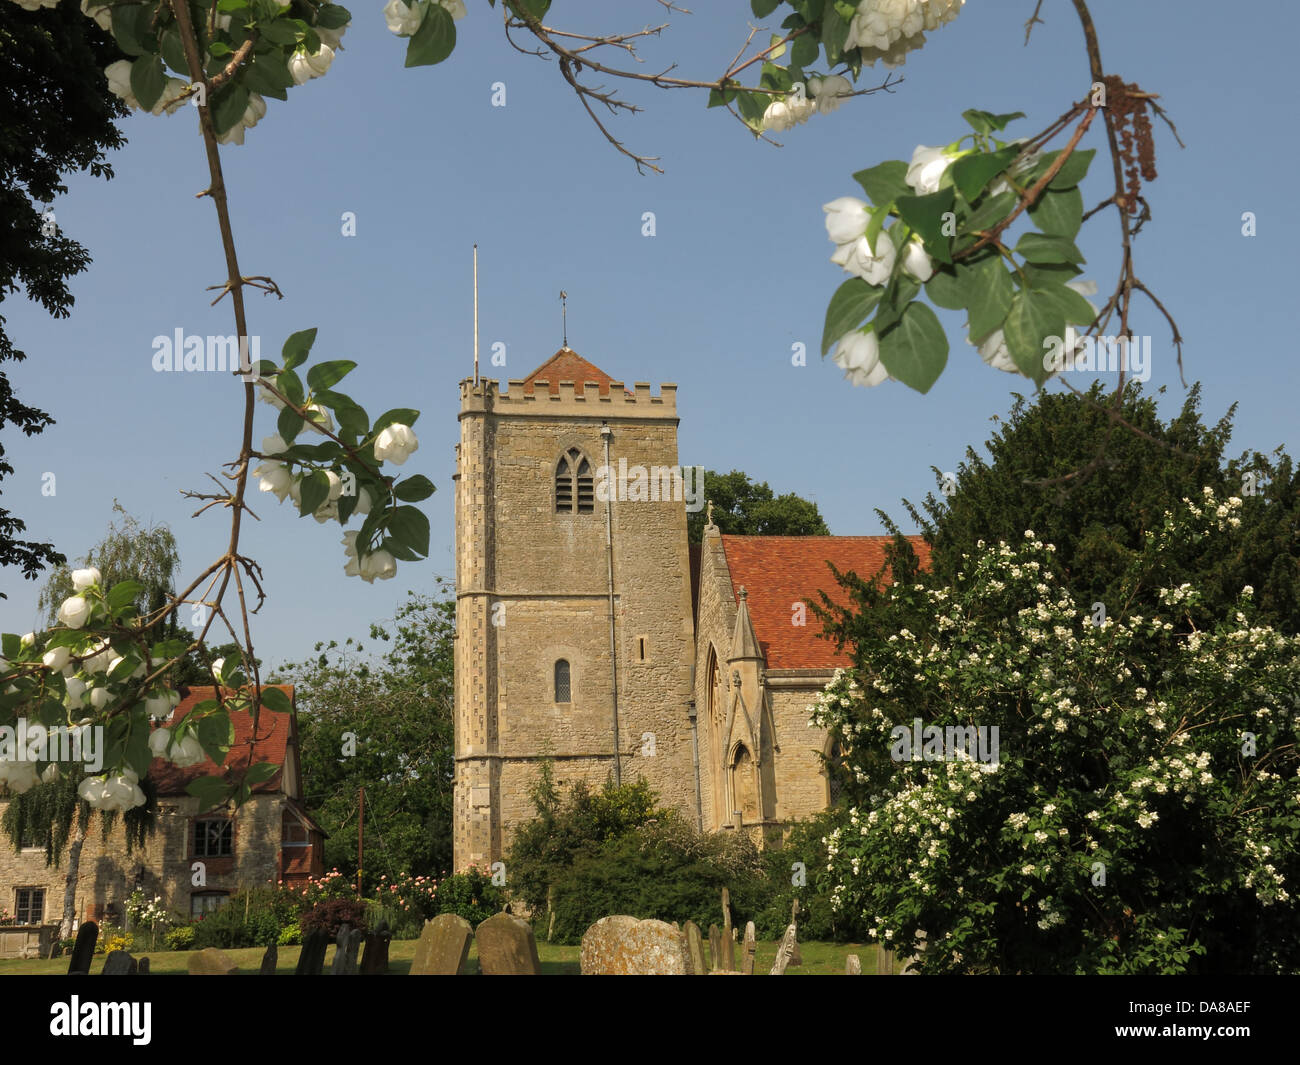 Beautiful,Dorchester,On,Thames,building,interior,of,St,Peter,&,St,Paul,HDR,oxen,oxford,oxfordshire,ancient,monument,graveyard,in,summer,with,flower,flowers,trees,tree,in,bloom,Gotonysmith monuments NT,Buy Pictures of,Buy Images Of